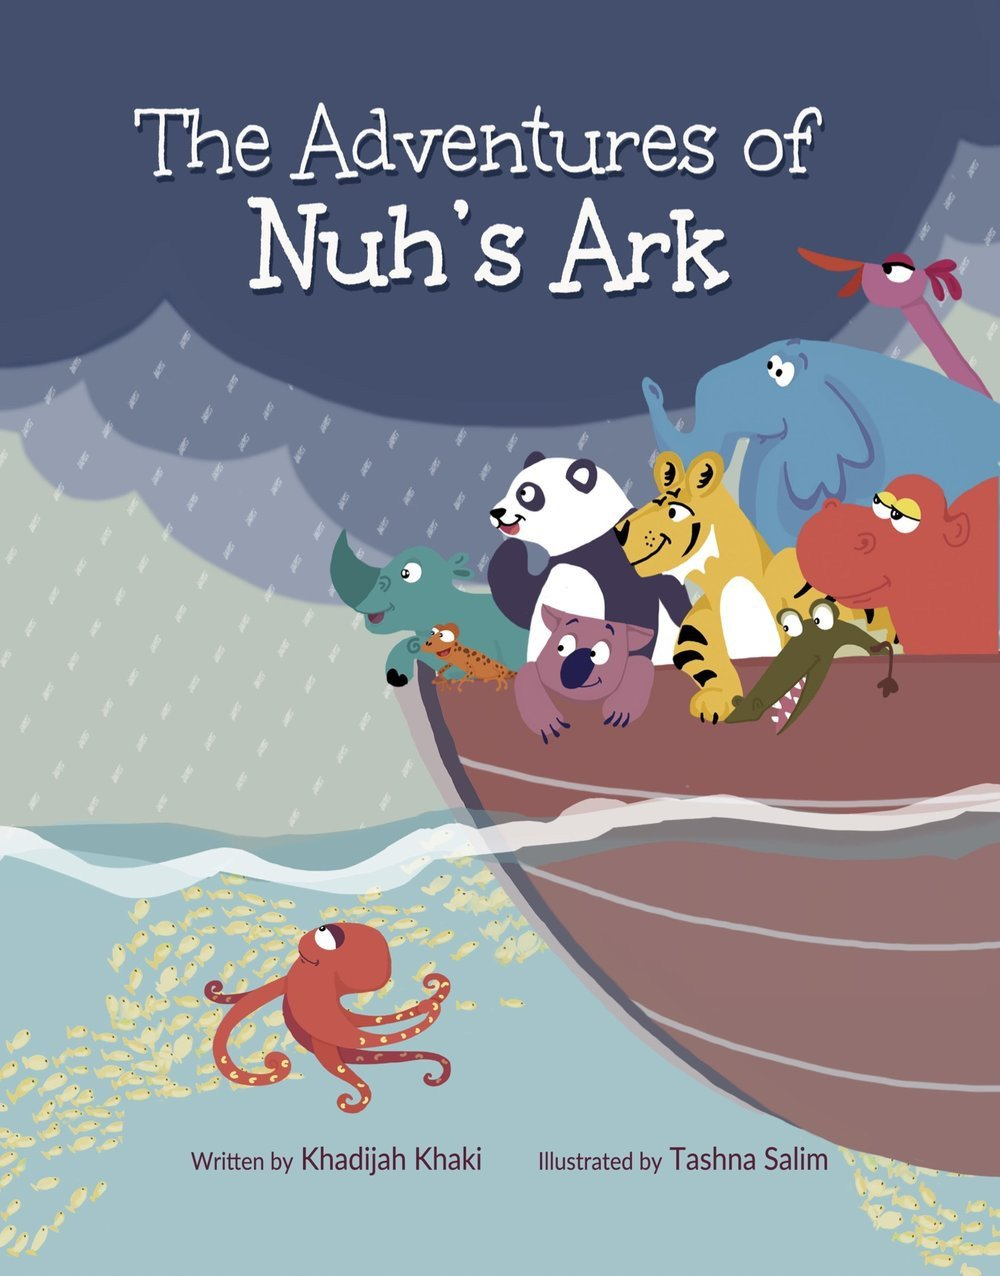 The Adventures of Prophet Nuh's Ark